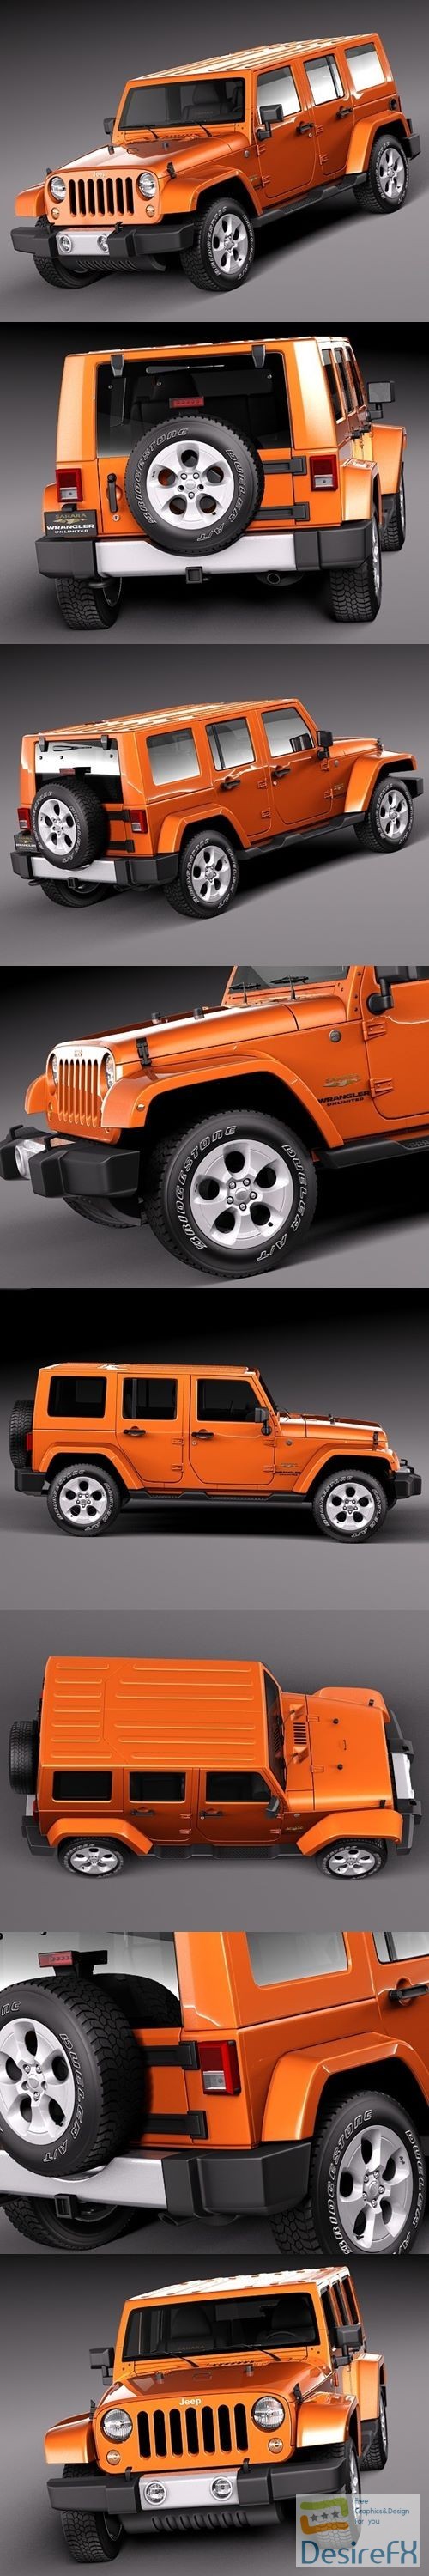 3d-models - Jeep Wrangler Unlimited Sahara 2013 3D Model